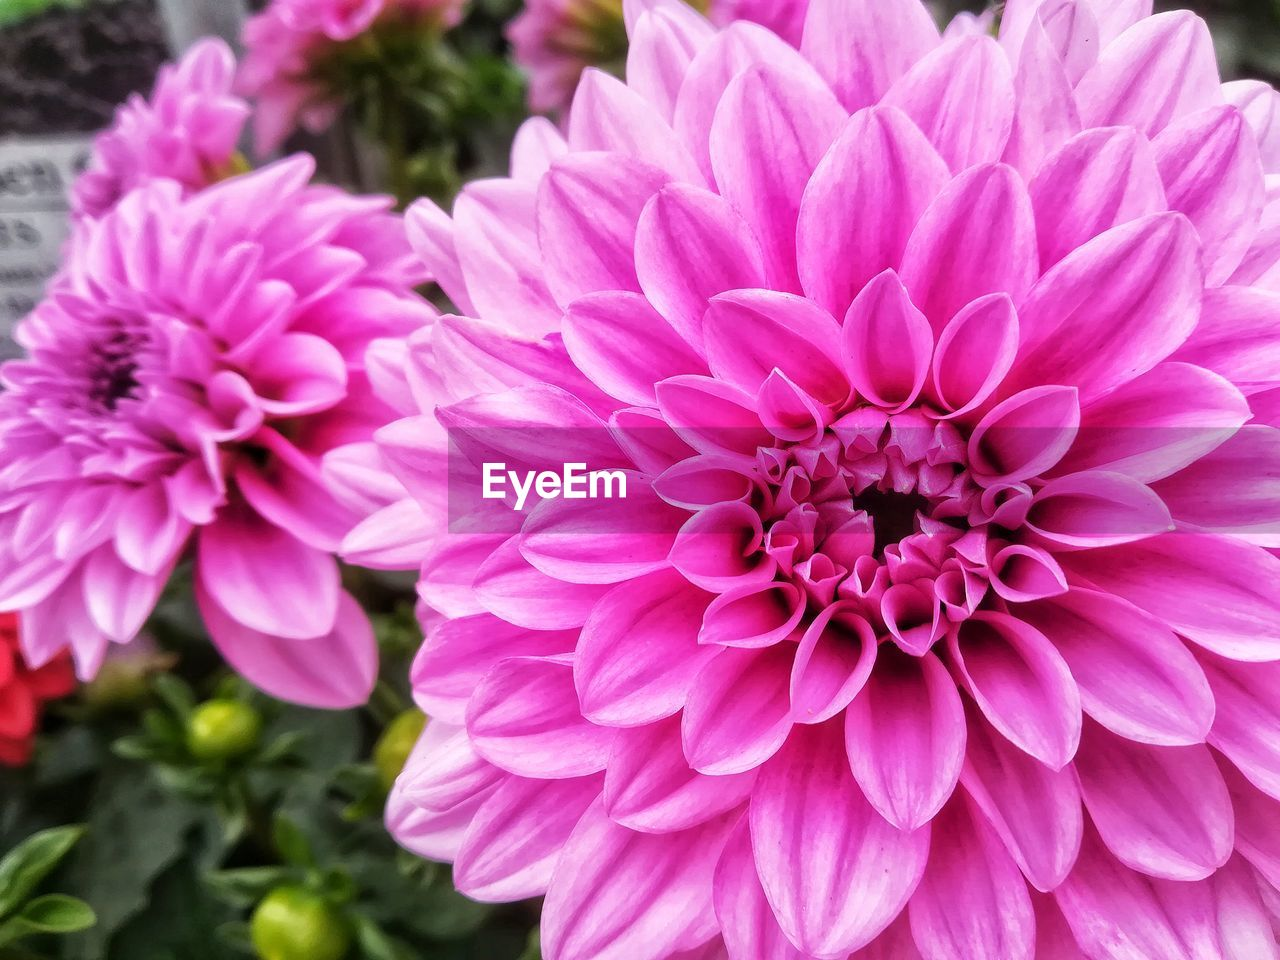 flowering plant, flower, vulnerability, fragility, freshness, pink color, plant, petal, beauty in nature, flower head, close-up, inflorescence, dahlia, growth, nature, focus on foreground, no people, day, outdoors, chrysanthemum